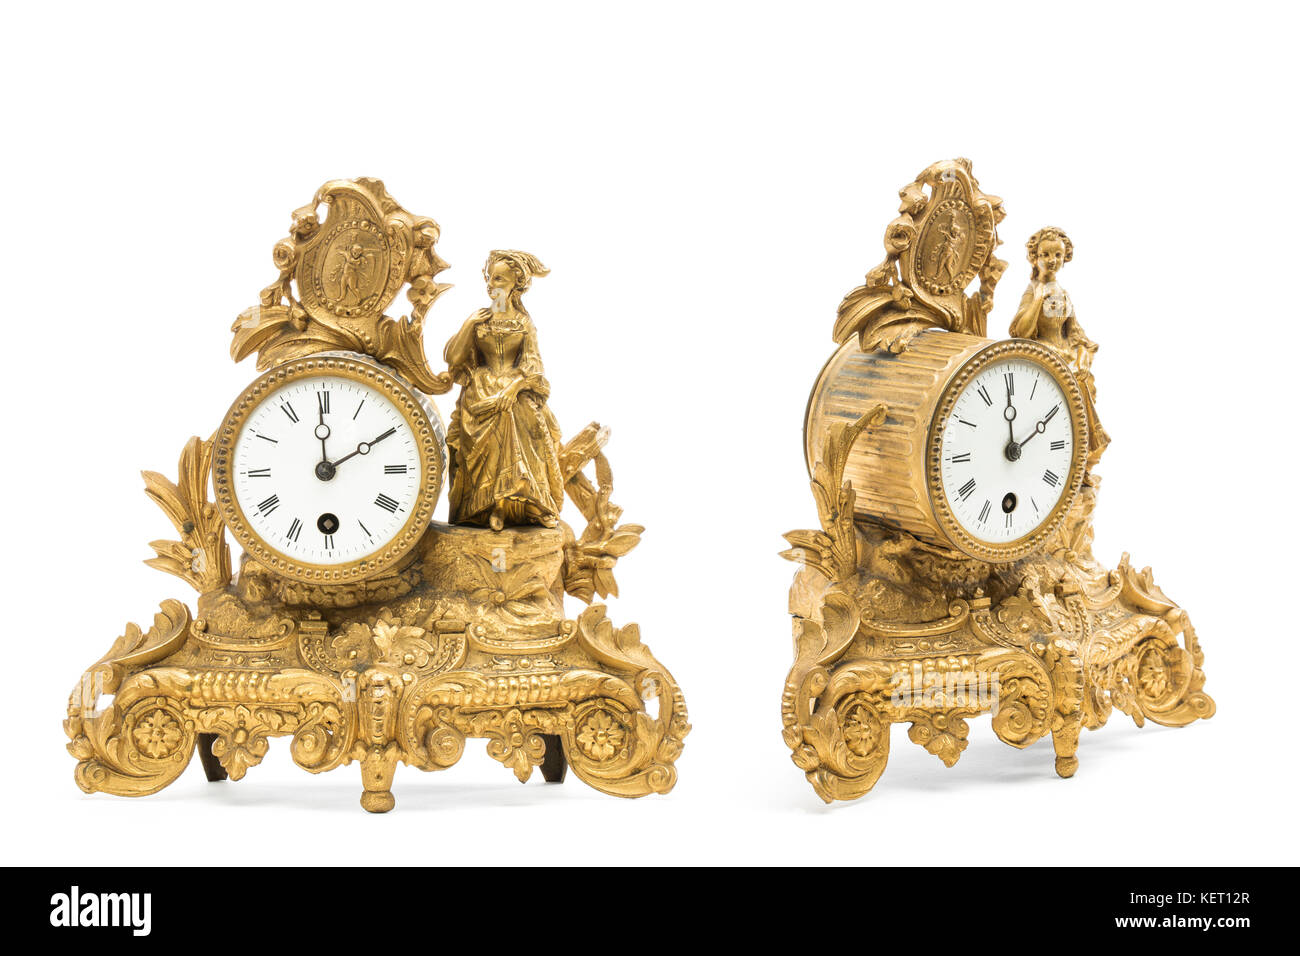 Table clocks stock photos table clocks stock images alamy antique gold colored table clocks on the white background stock image gamestrikefo Gallery